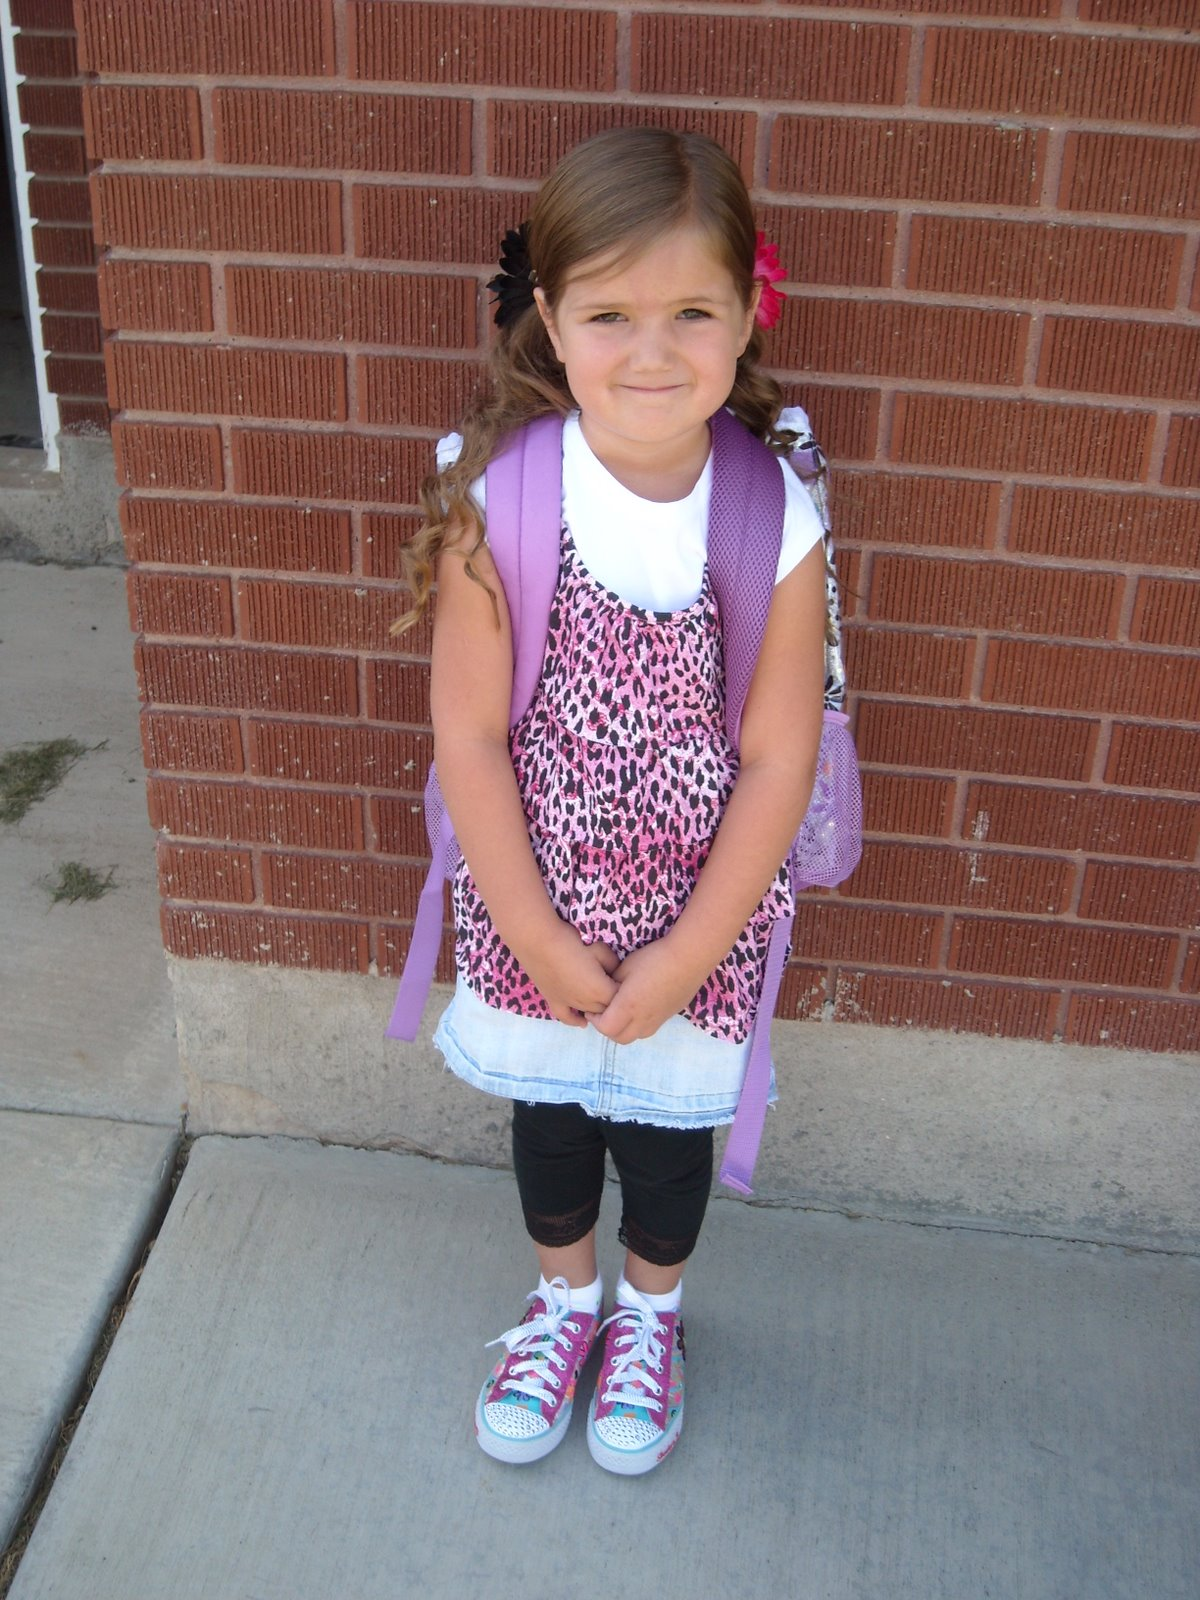 emma s first day of school she was so excited to start kindergarten ...